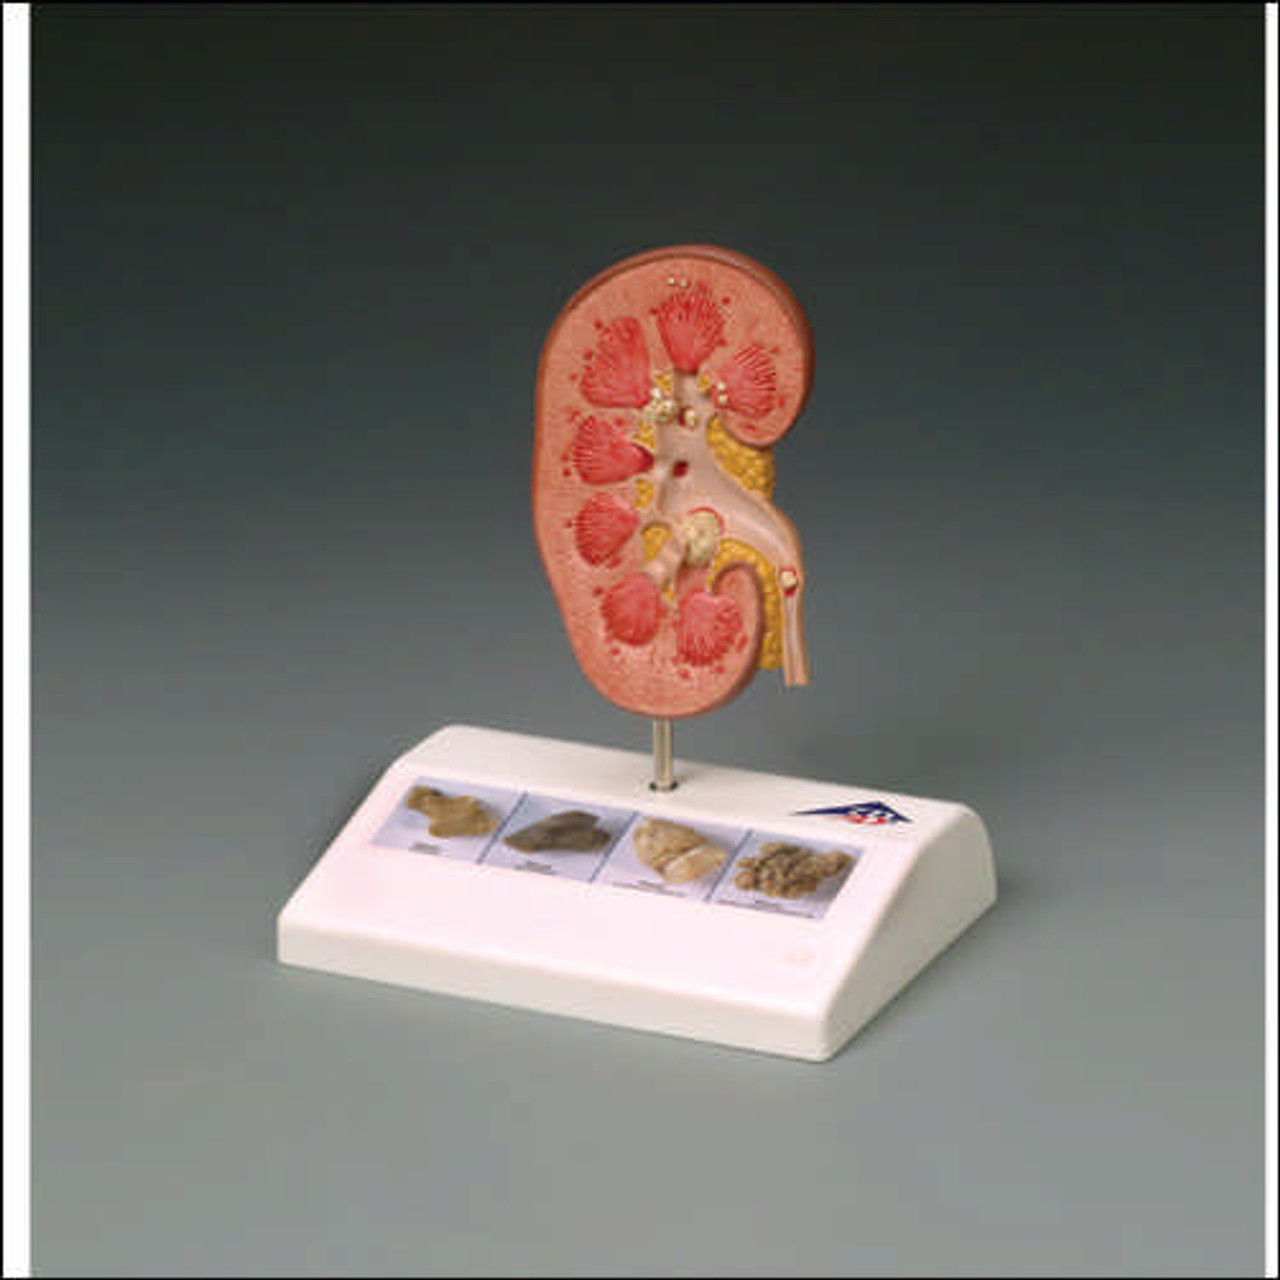 Kidney Stone Anatomical Model